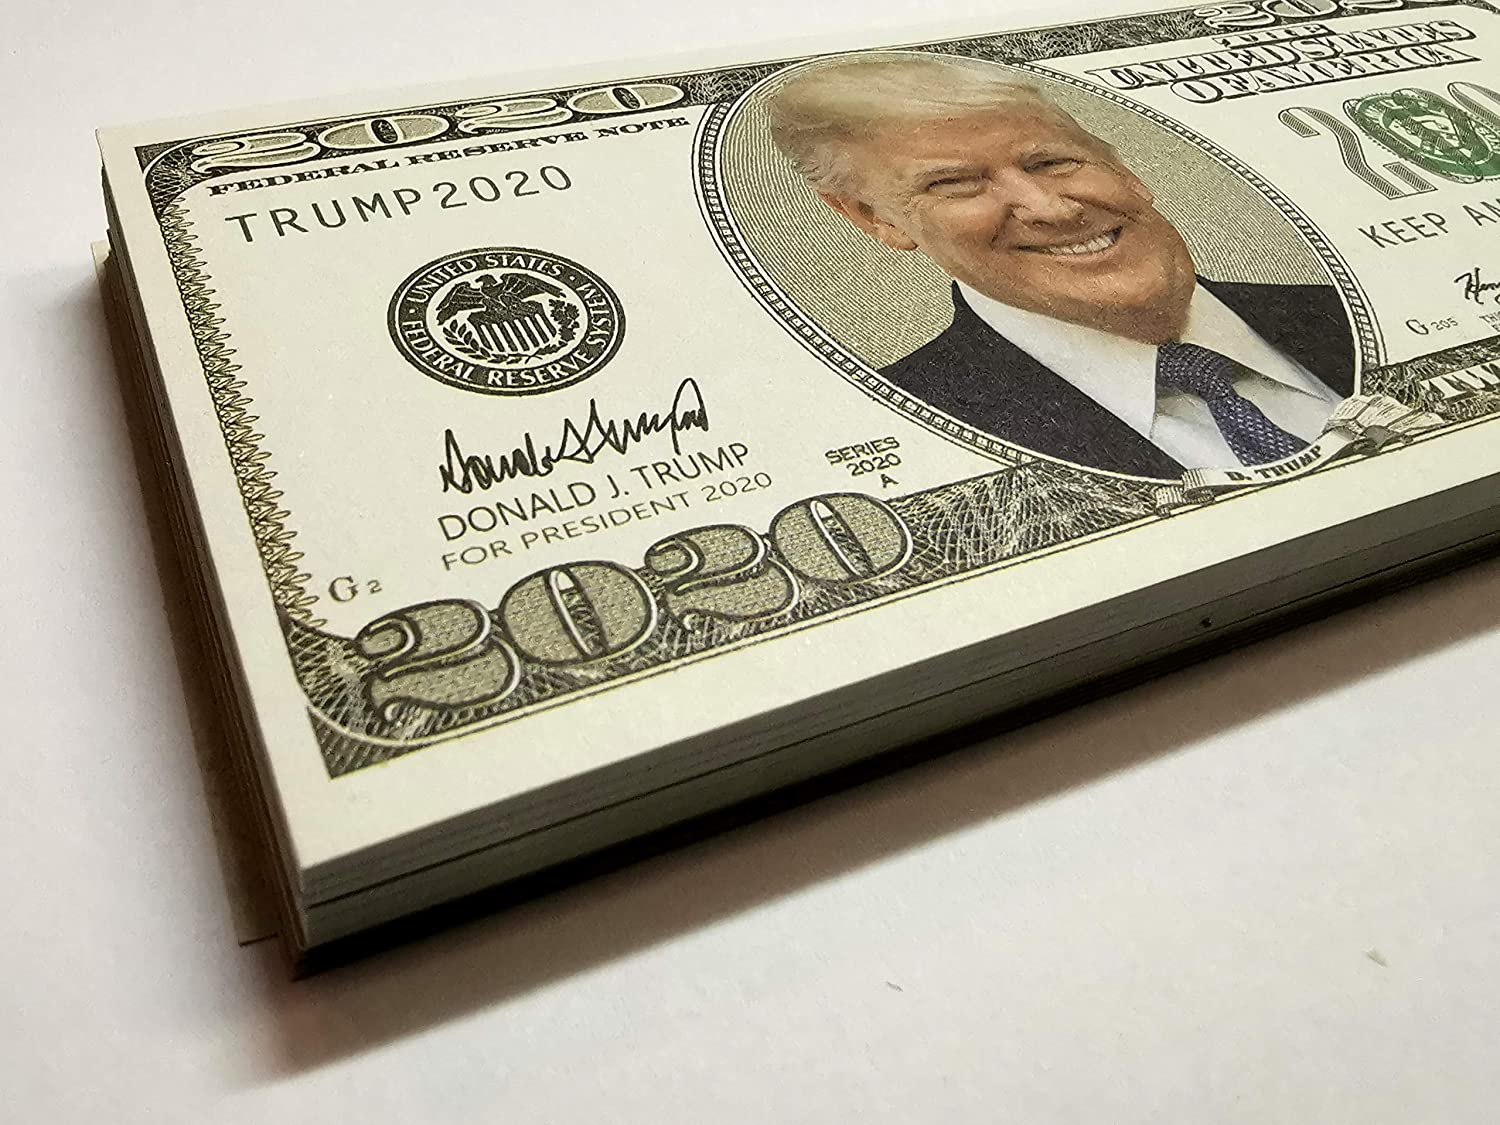 President Re-Election Limited Edition Collection Pack of Keep America Great NinoStar 500 pcs of Donald Trump 2020 Dollar Bill